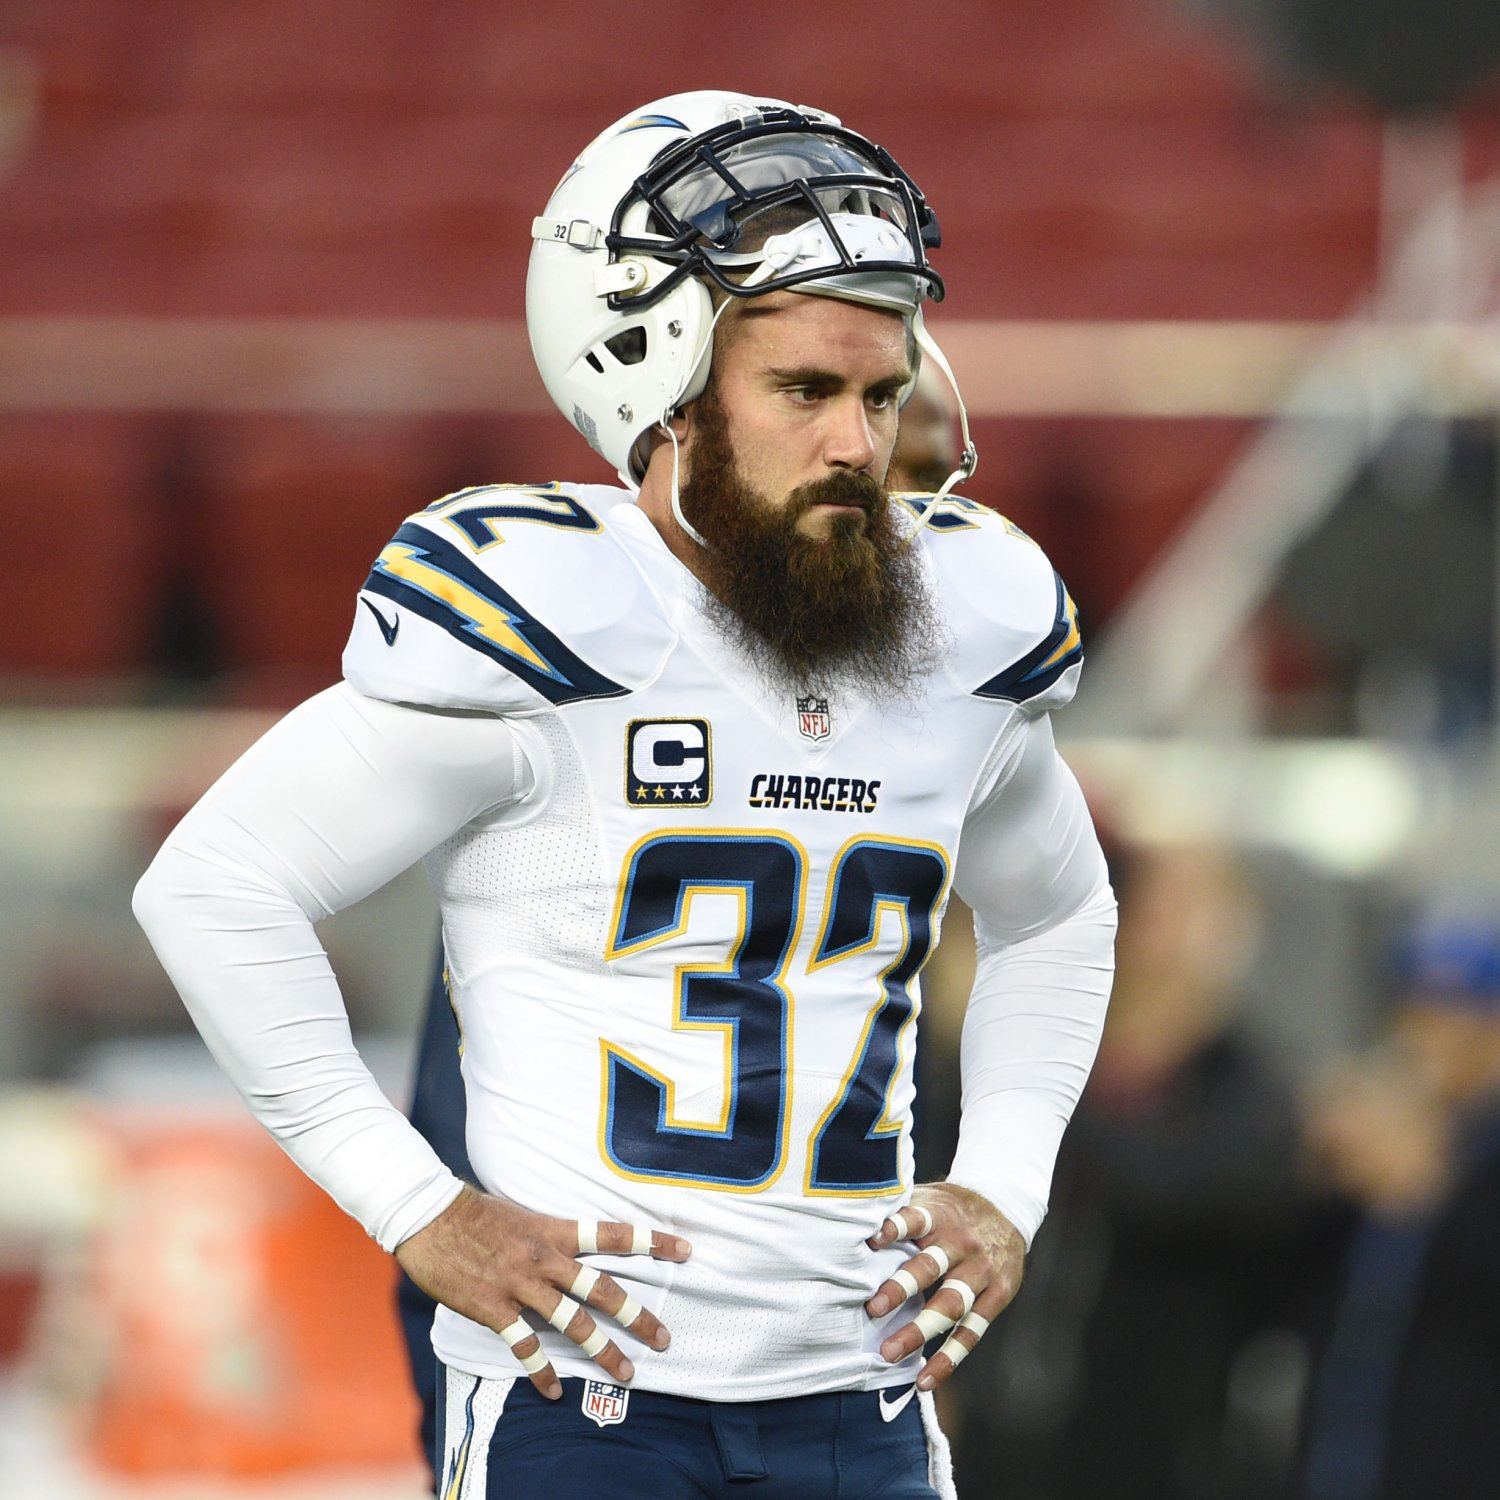 San Diego Chargers Draft: 'Disrespected' Eric Weddle Latest Cause For Concern For